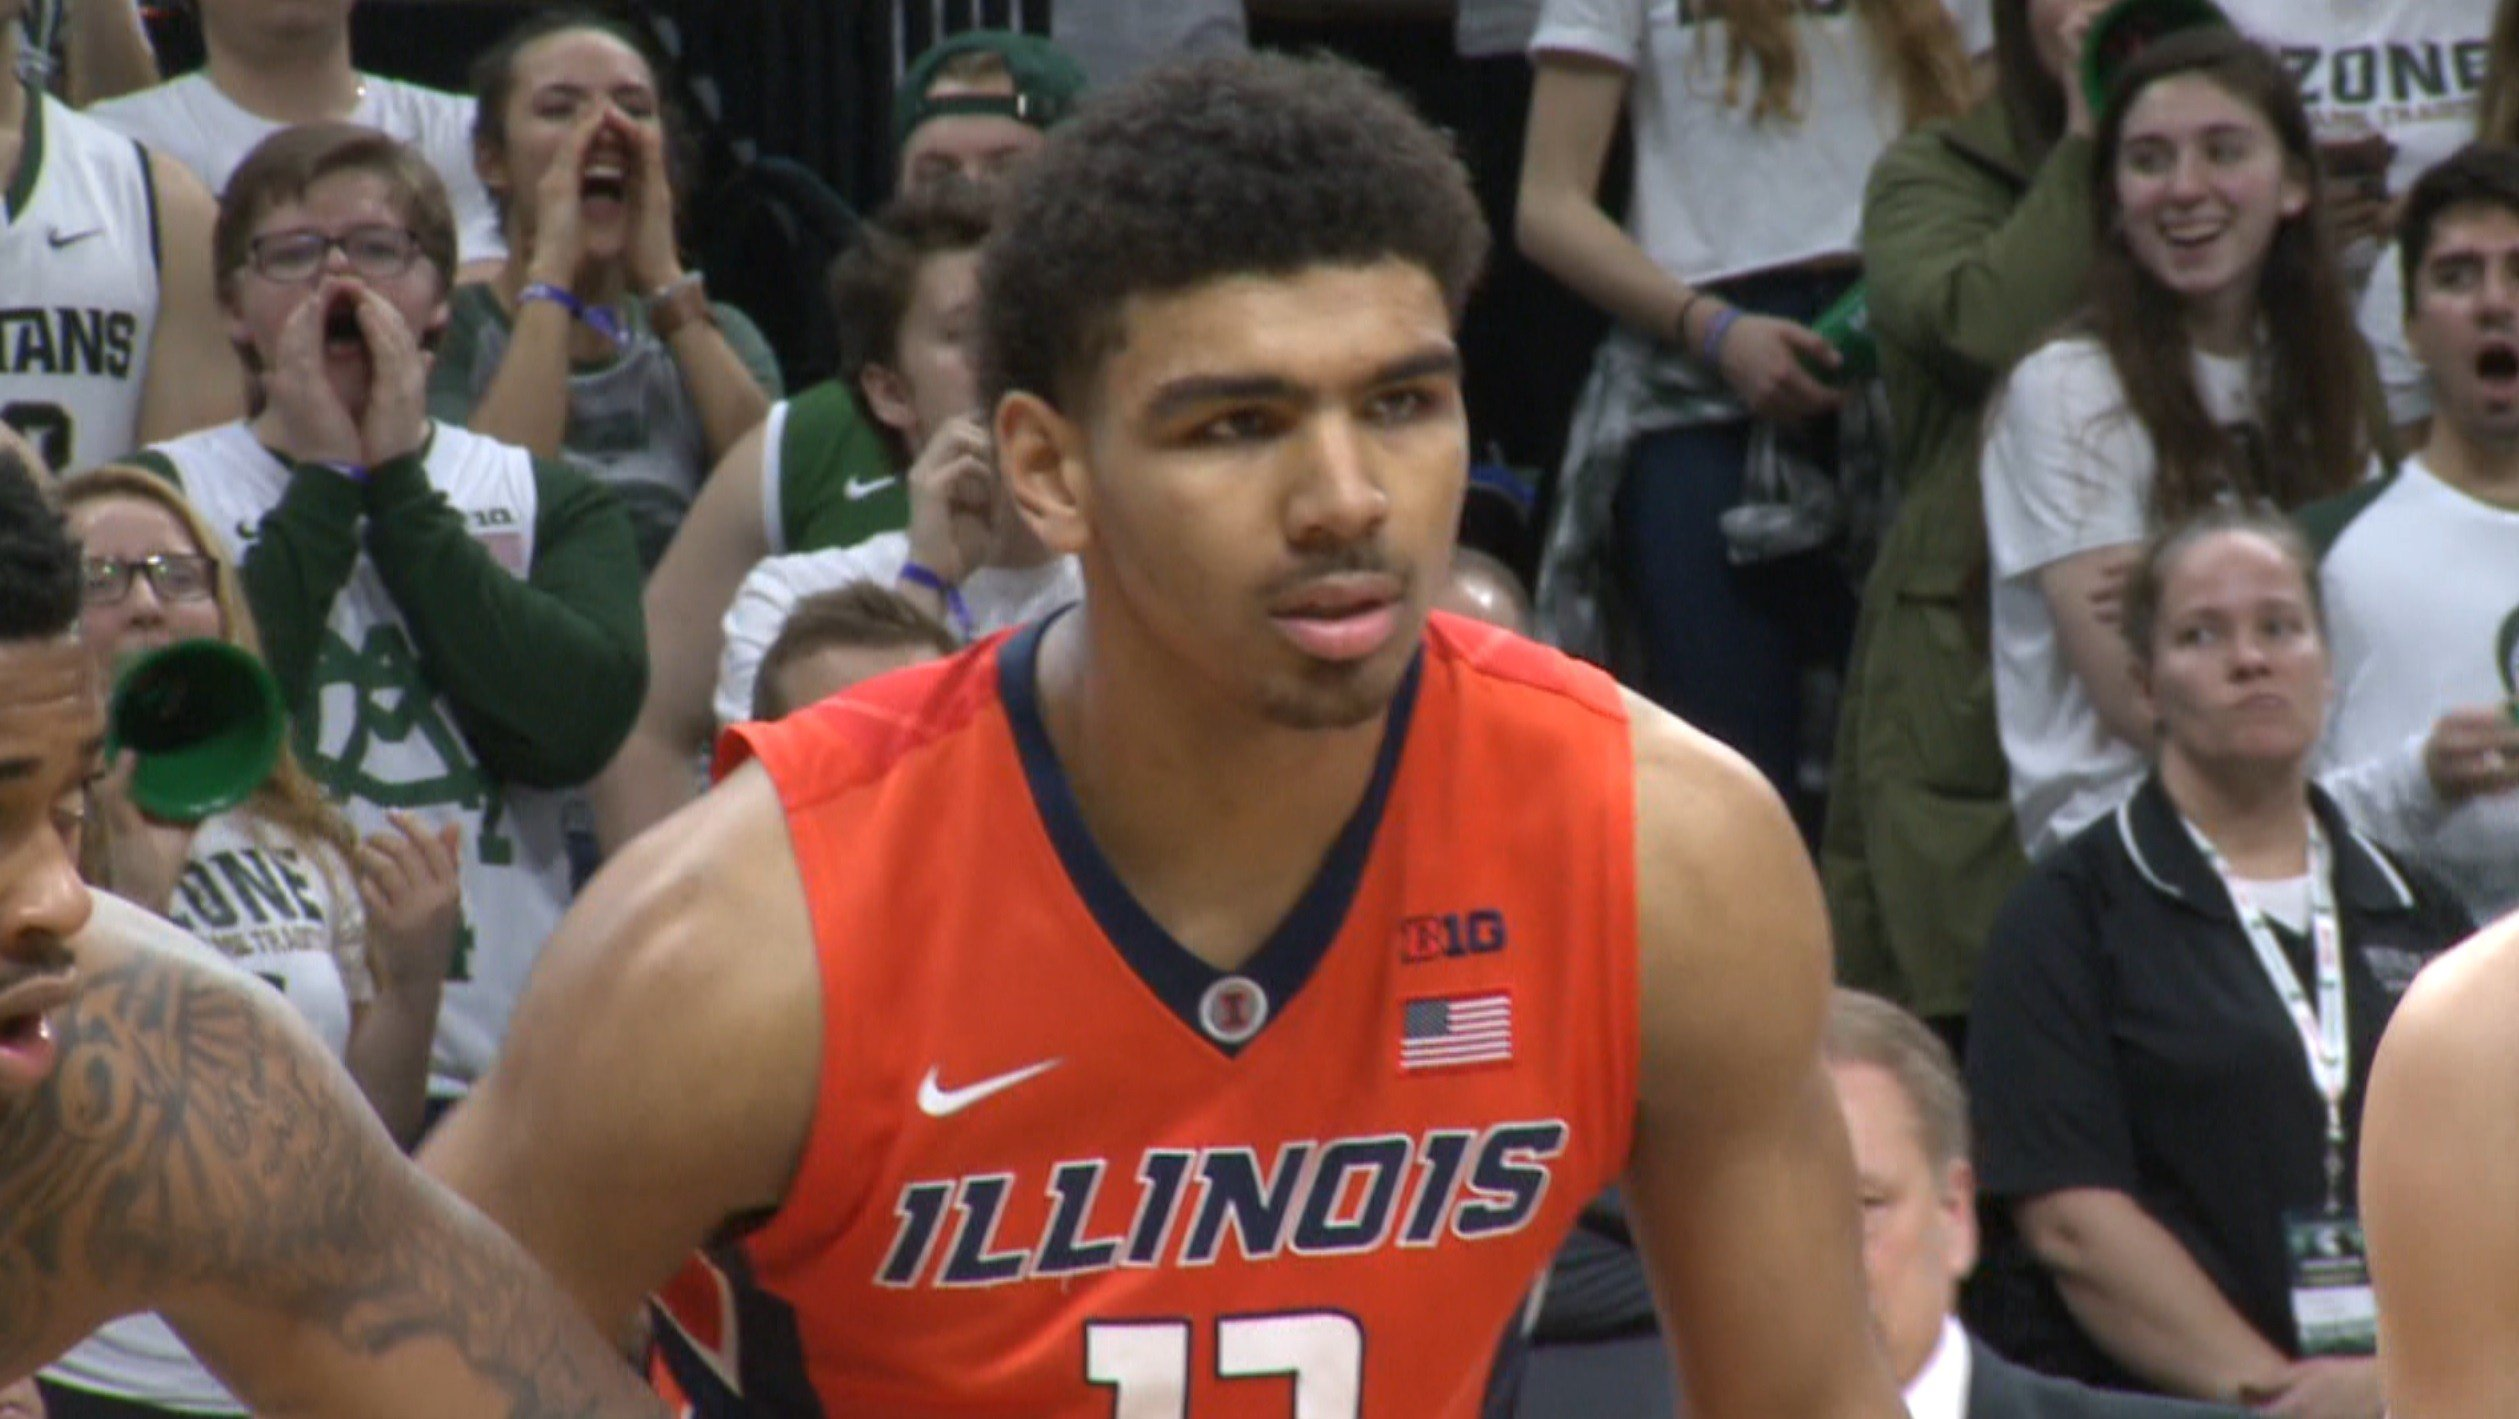 Illinois freshman Mark Smith prepares for tipoff at the Breslin Center in East Lansing, Mich., where he could have been wearing a green and white jersey had he chosen to play for Michigan State.